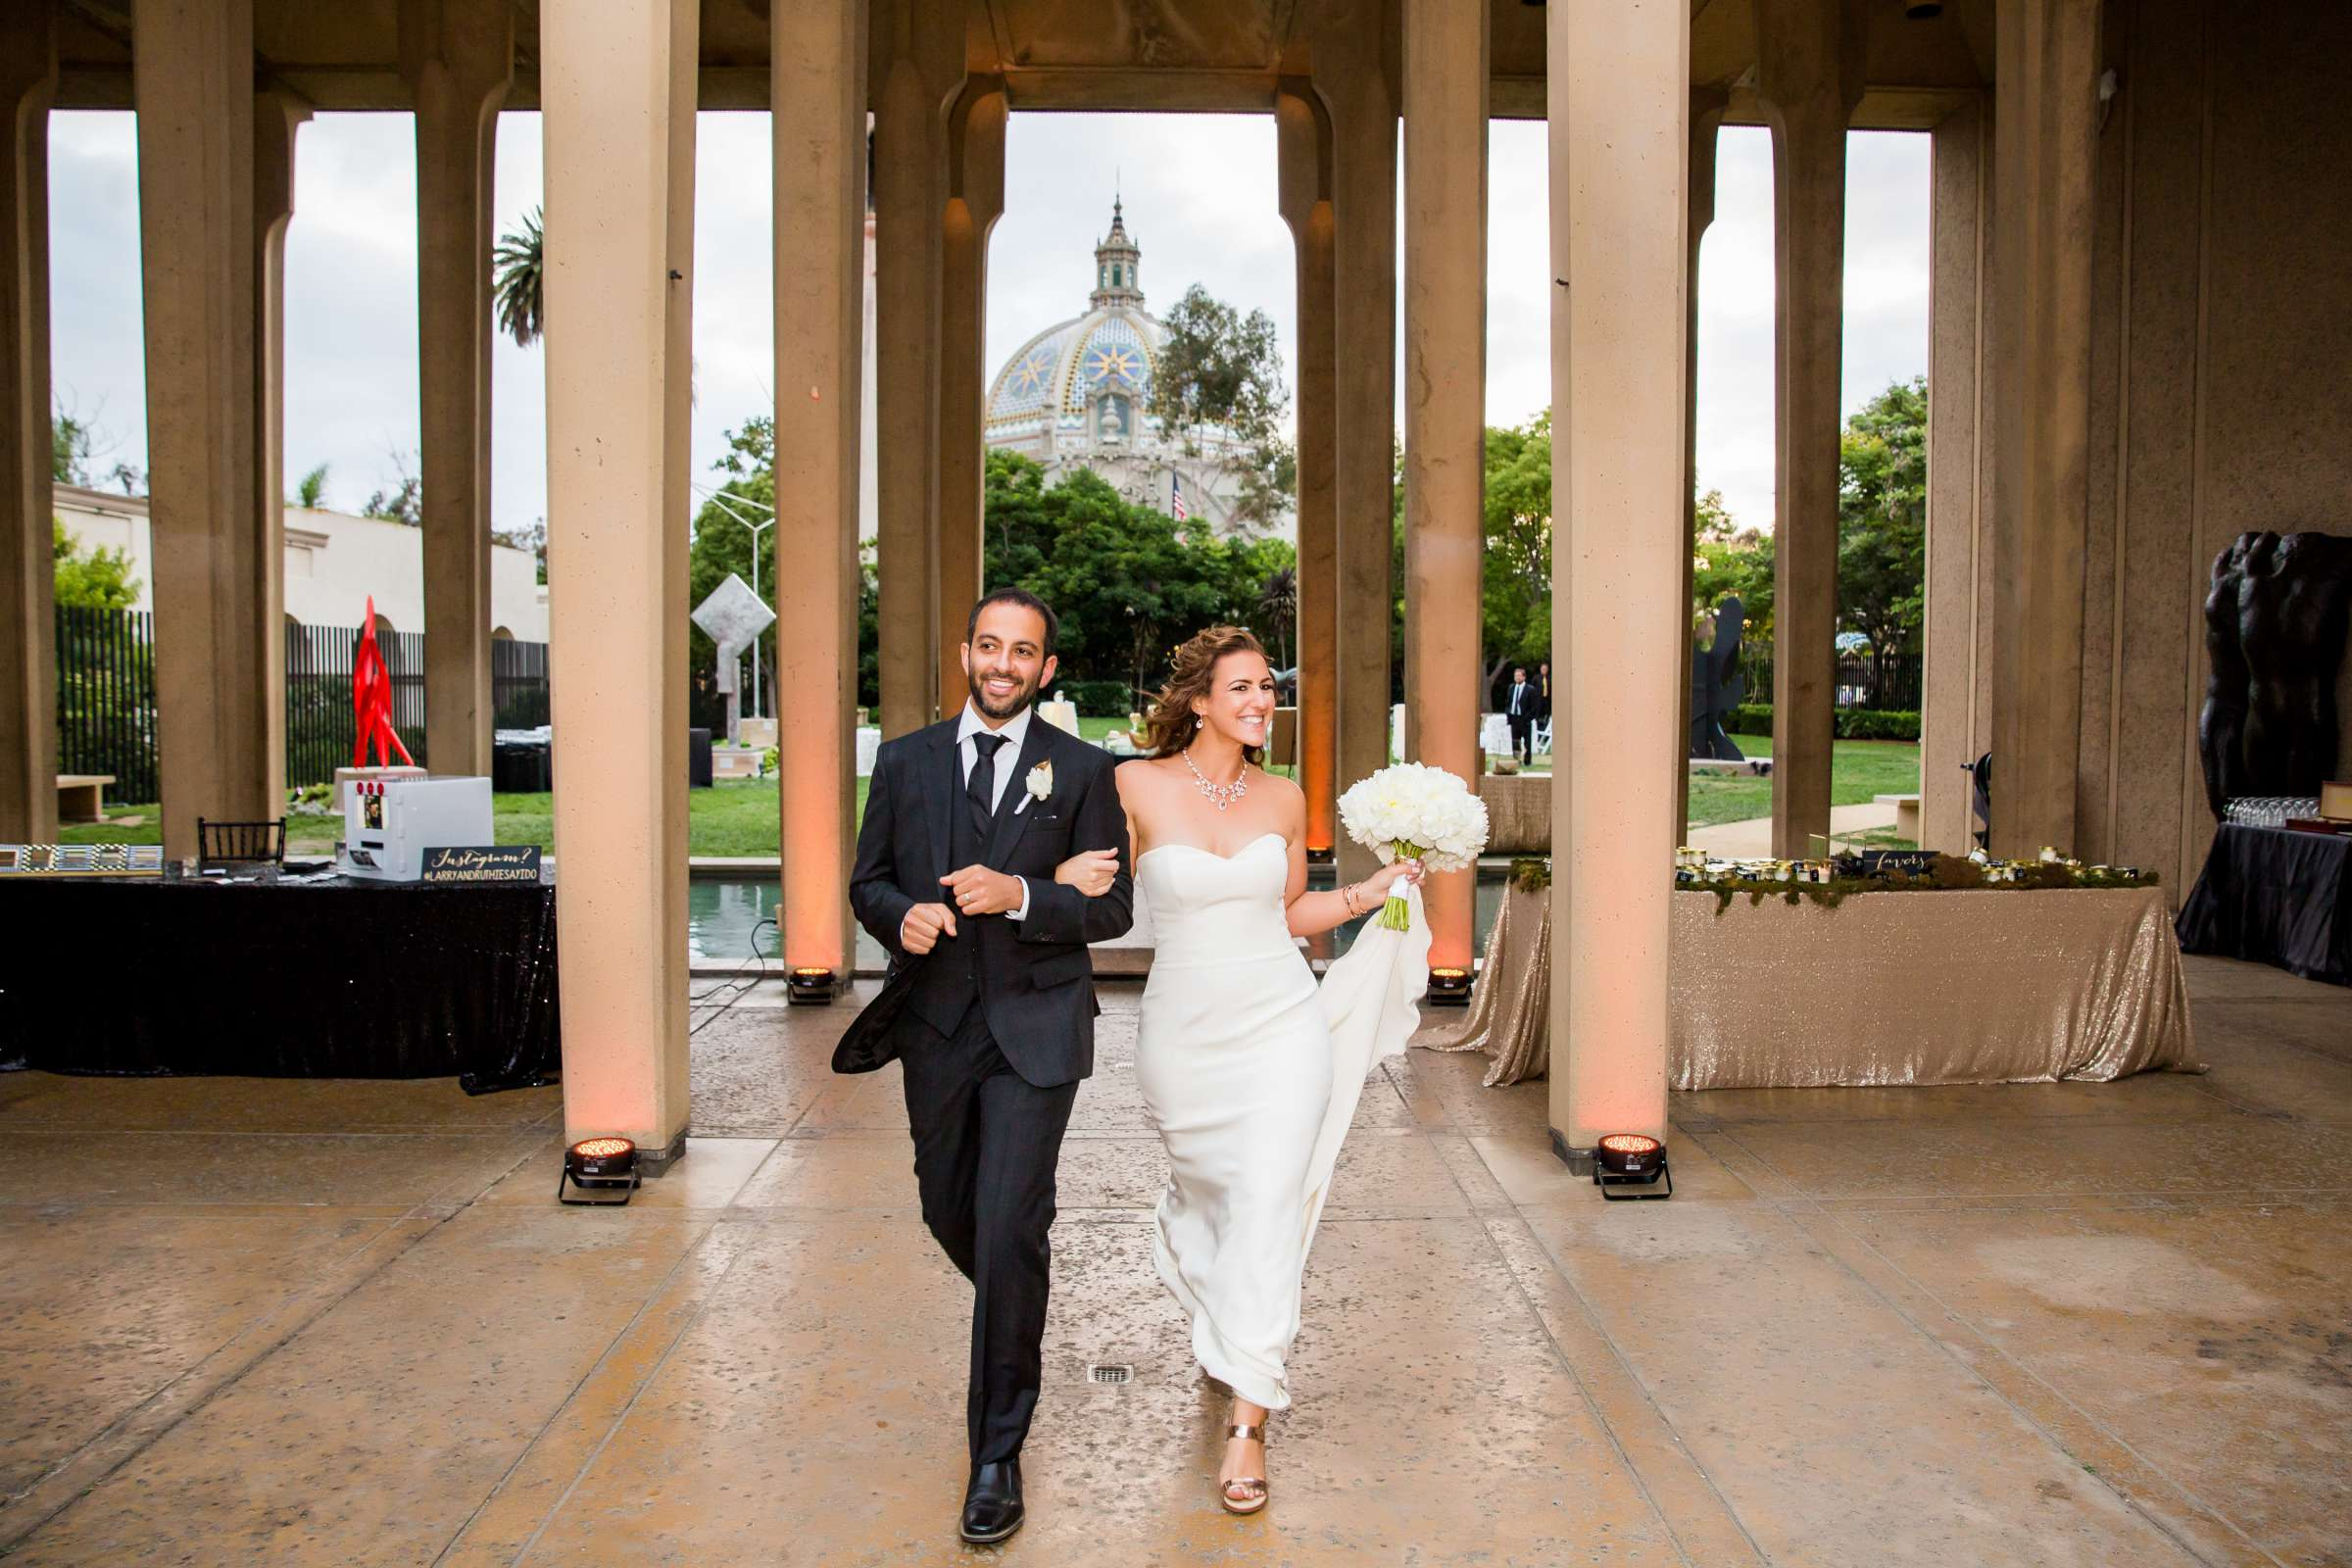 San Diego Museum of Art Wedding coordinated by First Comes Love Weddings & Events, Ruthie and Larry Wedding Photo #236842 by True Photography